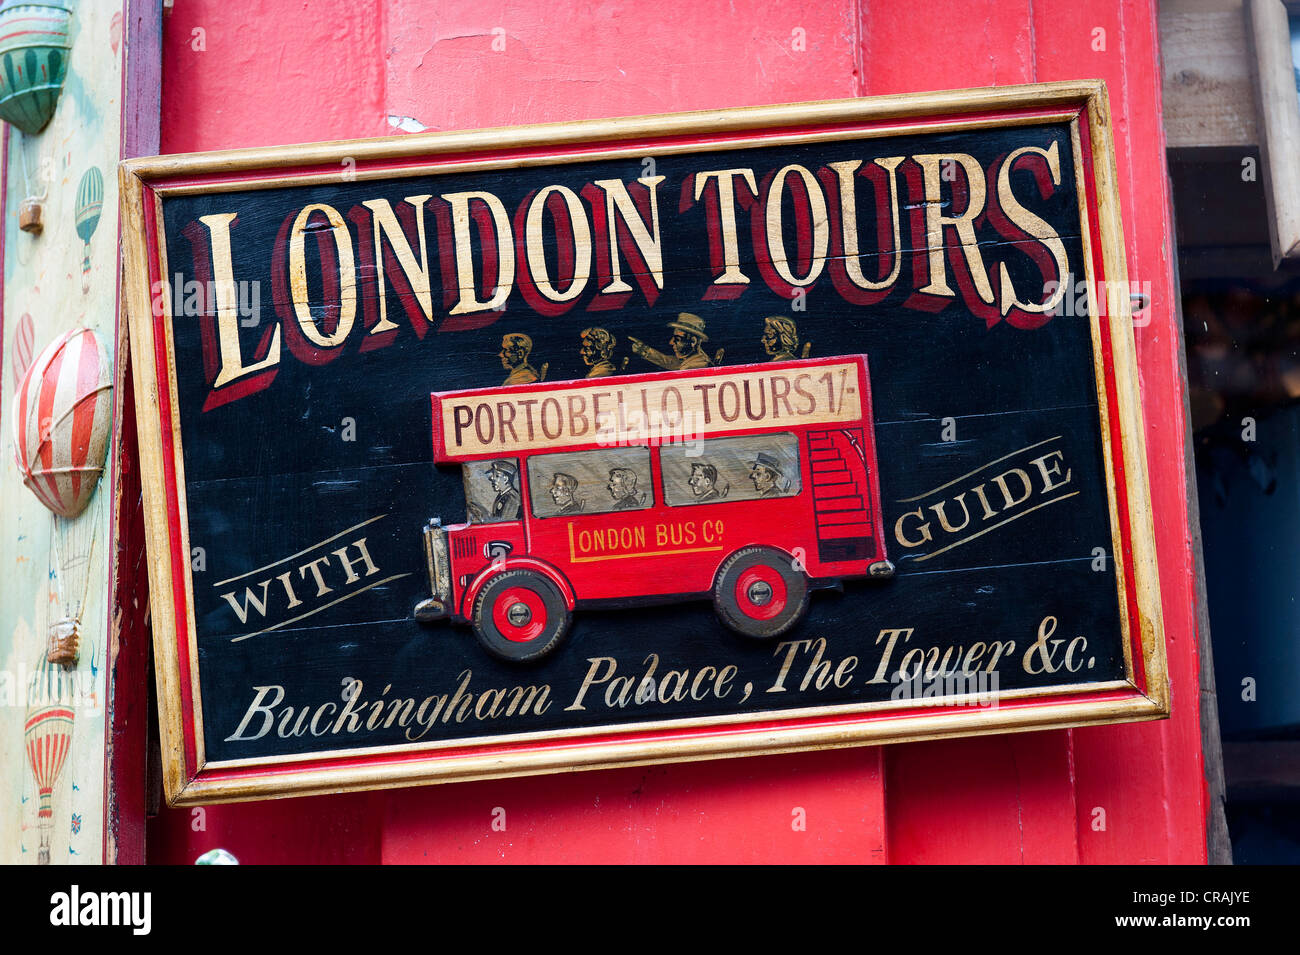 Old sign 'London Tours', antiques shop, Portobello Road, Notting Hill, London, England, United Kingdom, - Stock Image